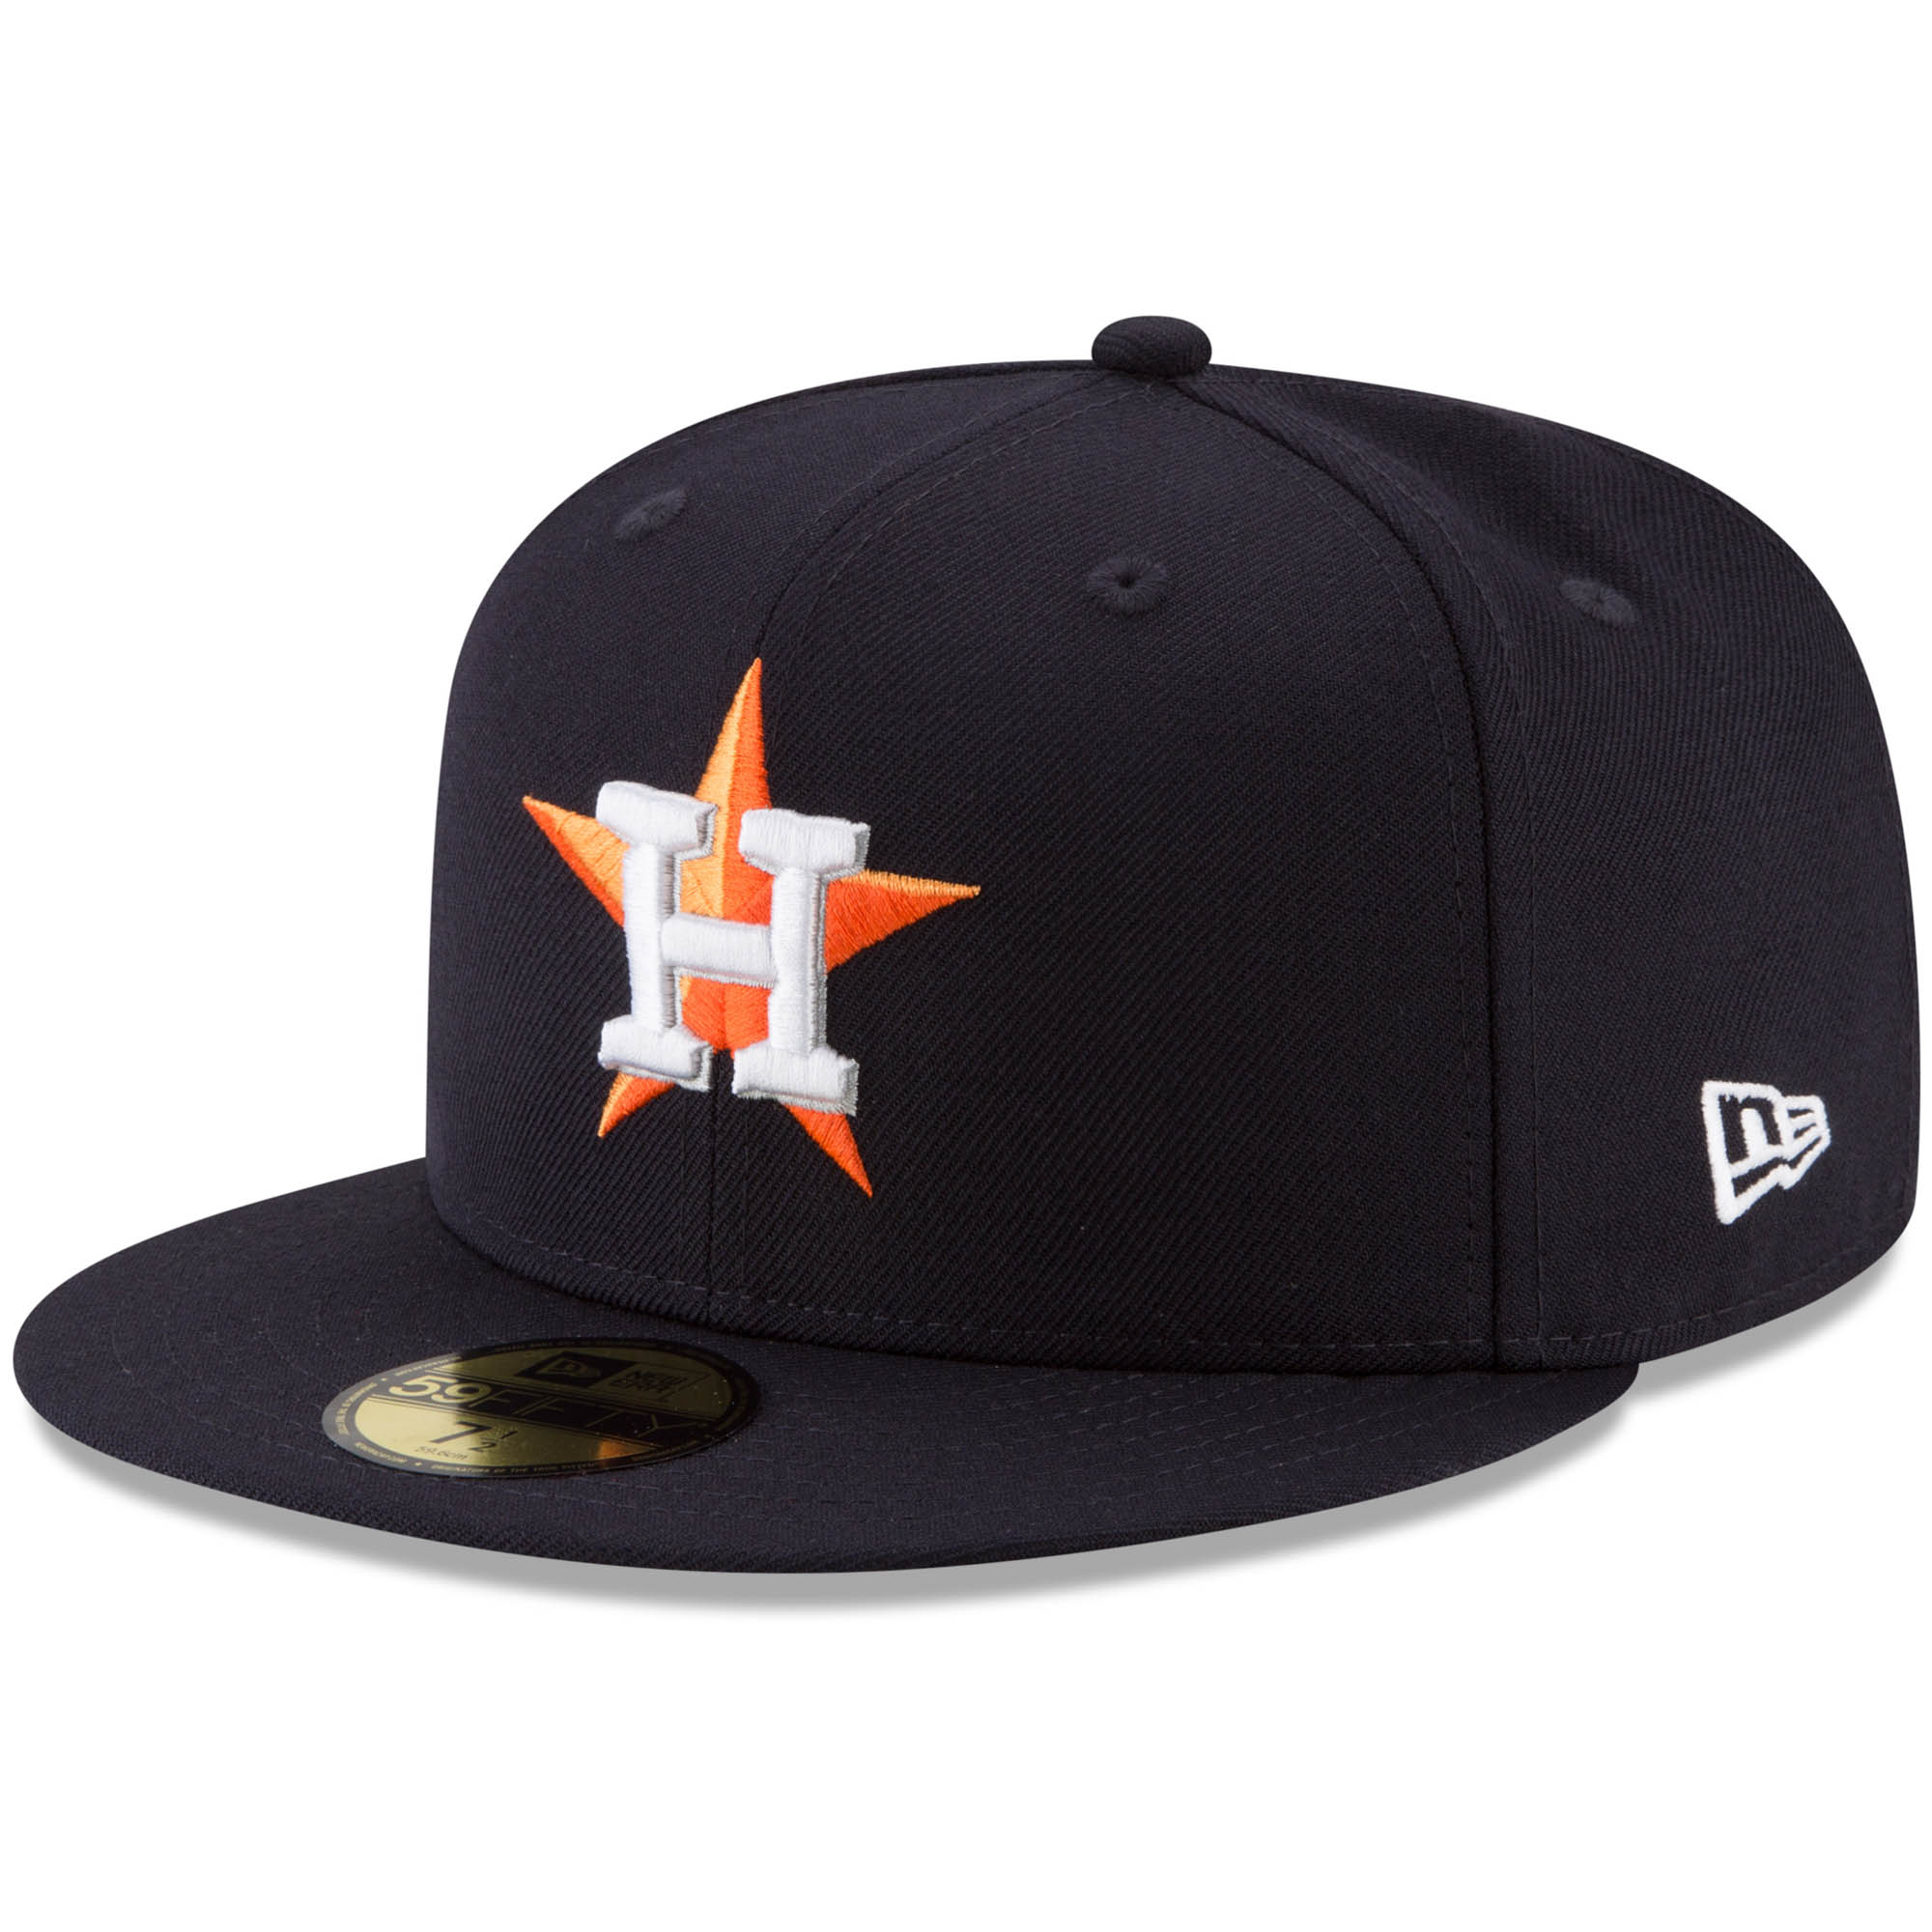 Houston Astros New Era Cooperstown Collection 2017 World Series Side Patch 59FIFTY Fitted Hat - Navy